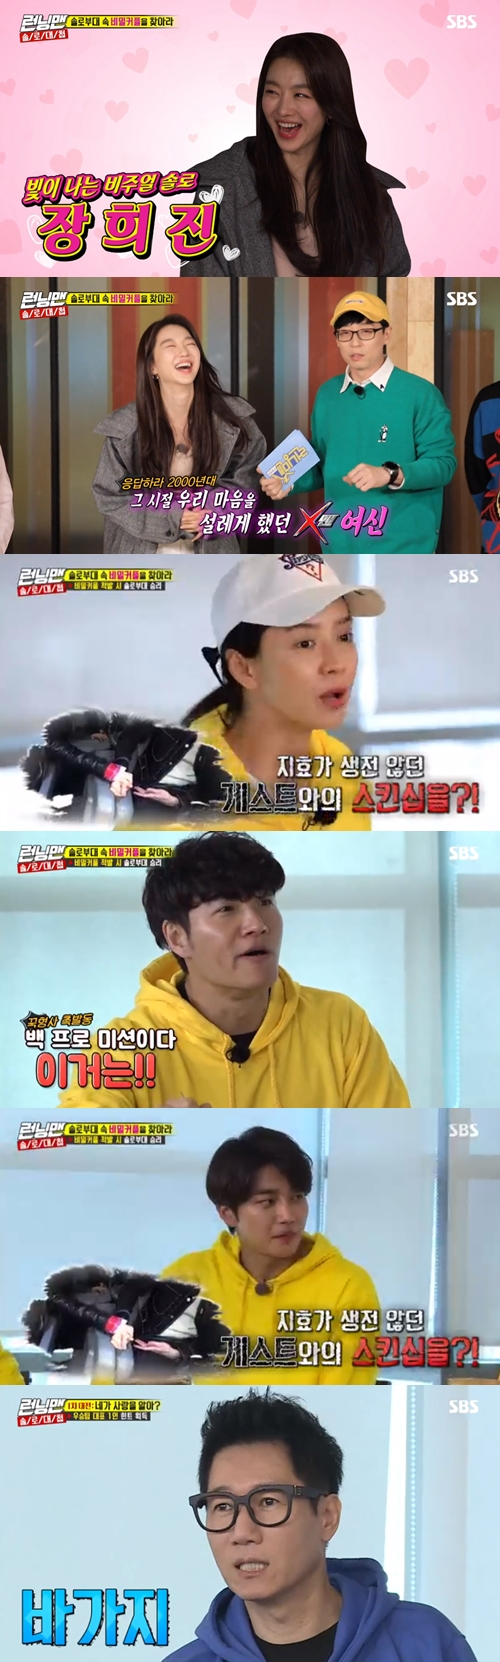 <p>Running Man in the picture The Secret couples earn hints, Song Ji-hyo with members of doubt received.</p><p>31 broadcast the SBS arts program Running Manin the photo, Jae-young Kim, Cosmic Girl or as a guest appeared.</p><p>This day is a solo bag as the picture emerged. To this Yoo Jae Suk and one to X-Man after the firstand half is. Do you see us with this X-ManKim Jong the people and the love line has been revealed. And Zhang Ye is nowadays, people X-Man.said shy.</p><p>Recording Electric Guest, they advance the mission. One of the missions of the Member 3 of the check was, or glasses with a face and Song Ji-hyo JI Suk Jin as a sign of accept. Jae-young Kim role of audio staff as to the mission performed. Members direct the microphone that fills Jae-young Kim, she didnt know her. Chapter we With role the mission was successful.</p><p>The members of a spoon through a drawing of three people a guest with the team selection. The number 1 team members Yoo Jae Suk and JI Suk Jin, Yang and more as well. Number 2 is one and So Min, Lee Kwang-Soo. Kim Jong Kook with a team this Old Song Ji-hyo is the future, coupleand your off.</p><p>The photo, Yoo Jae Suk team and among Jae-young Kim appeared. Ago min is him in the car tried to but. Jae-young Kim declined. Before a small half a day or havent seen me; I was one of the small people, thumbthis eagerly,he answered laughing.</p><p>The team divided behind the solo bag belongs to The Secret couplefind the mission it was given. Kim Jong Kook, Song Ji-hyo, Jae-young Kim this as a team was tied. Go Song Ji-hyo is Jae-young Kims hand, Kim Jong Kook, Song Ji-hyo and Jae-young Kim, was suspected. Song Ji-hyo is The Secret couples and if you are caught,he elucidated.</p><p>Song Ji-hyos name in the members are two people toward doubt all failed, and Song Ji-hyo we couple if it is not the end brother me jealous,she said to Kim Jong Kook embarrassing.</p><p>Zhang Ye is a gem of a horse not to panic and request the club to accept. This was Yoo Jae Suk is the long US with a lot of Shameless was,he said. Zhang Ye is the My beauty program, I like the guest came, and how hard it was Yoo Jae Suk sunbaenim of mind now you know,he answered, Yoo Jae Suk is already latehe said to laughter, I found myself.</p><p>Song Ji-hyo is sustained by members of the centre received. He is Jae-young Kim to a penalty into the water they dont sprinkle you on the floor sprinkled, and the members are Song Ji-hyos acting in this felt.</p><p> Three teams from the campus team through the mission, the tug team member is fired. Especially, the photo is a frog problem in the team of the mistake in your answer and to lead the team.</p><p>Meanwhile, Running Manevery Sunday at 5 PM broadcast.</p><p> Photo l SBS broadcast screen</p><p>Photo l SBS broadcast screen</p>